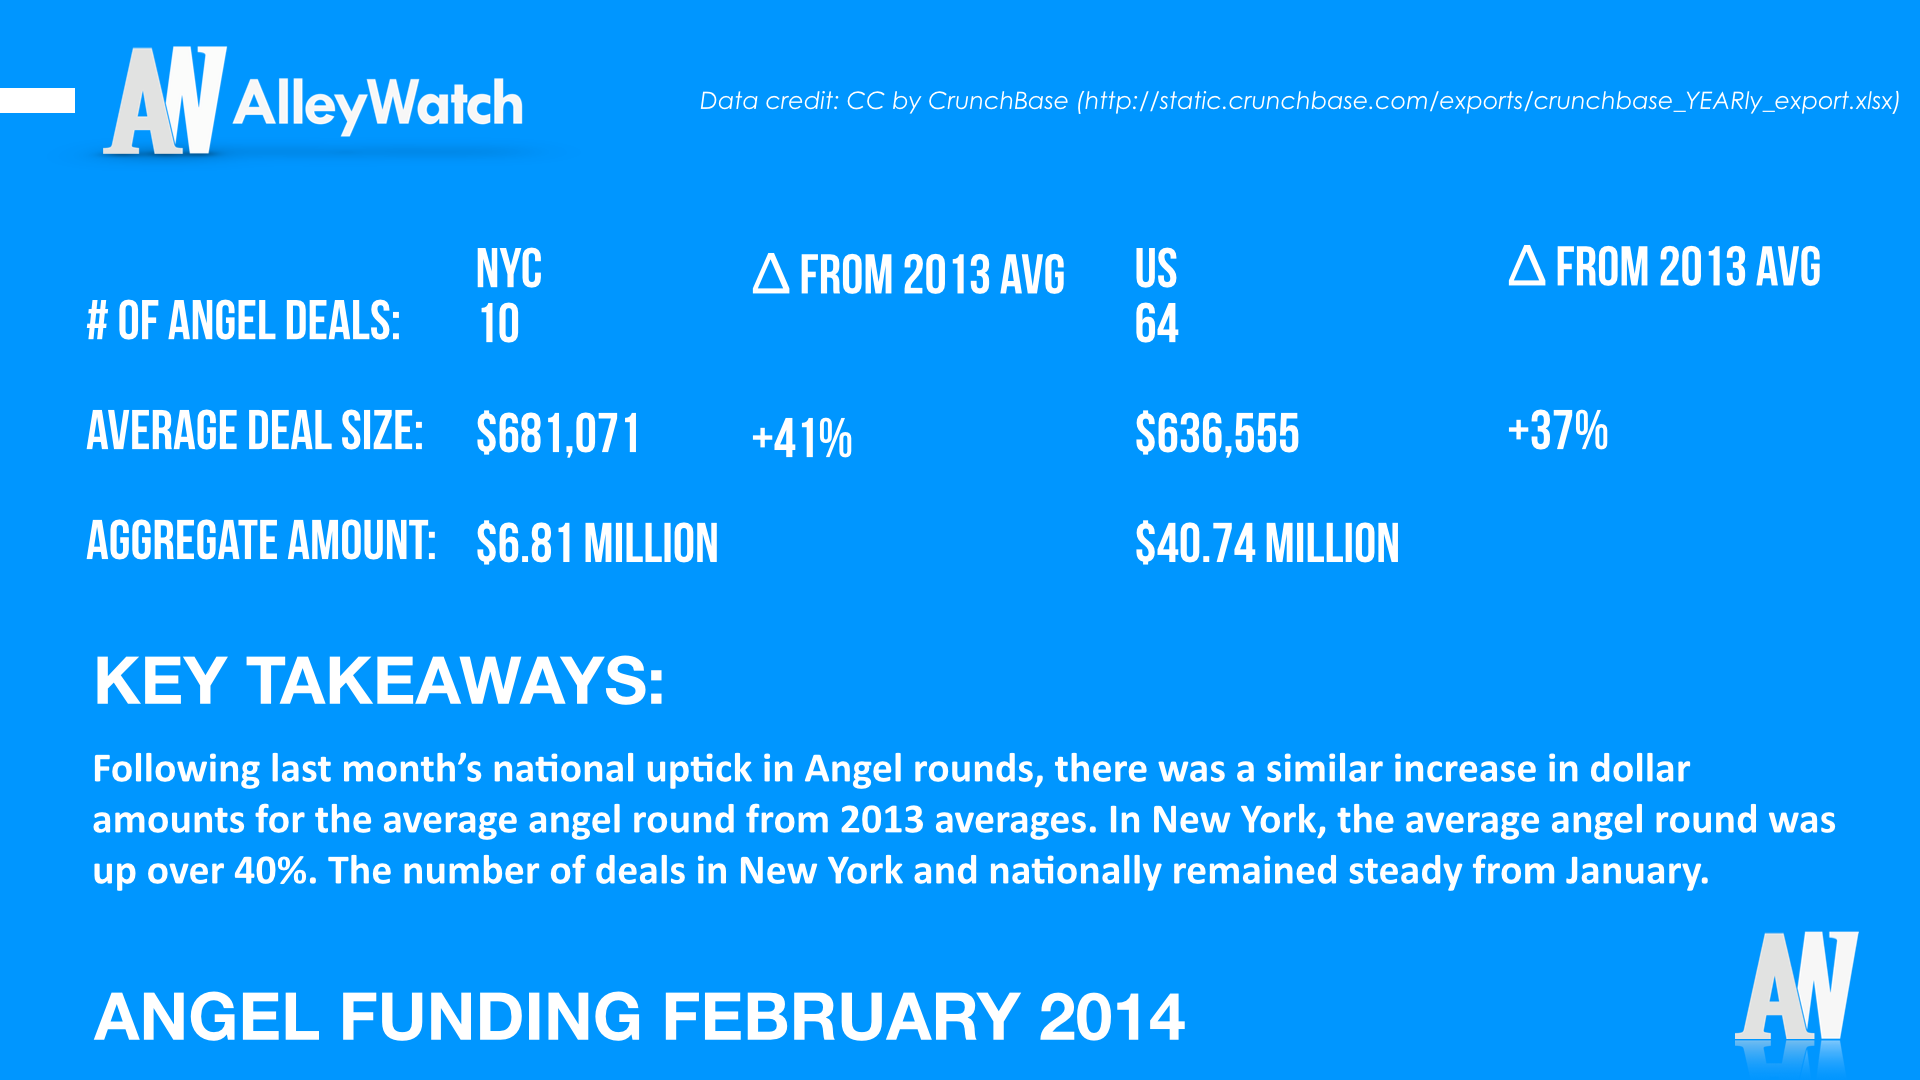 AlleyWatch January 2014 New York and US Venture Capital & Angel Investment Report.004